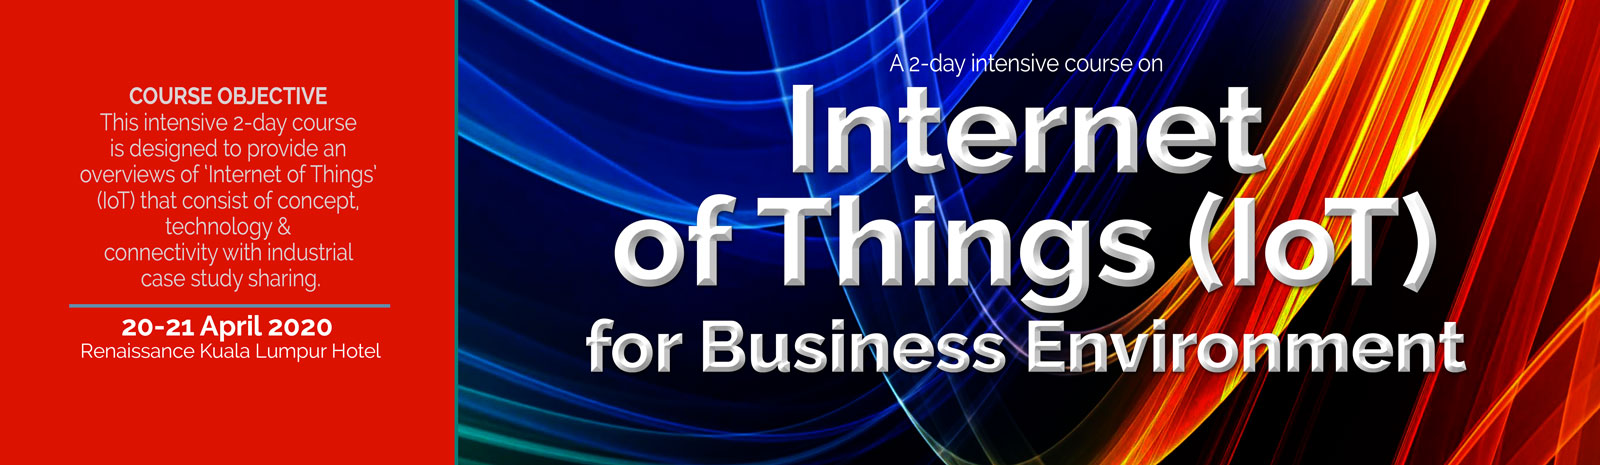 Internet of Things (IoT) for Business Environment